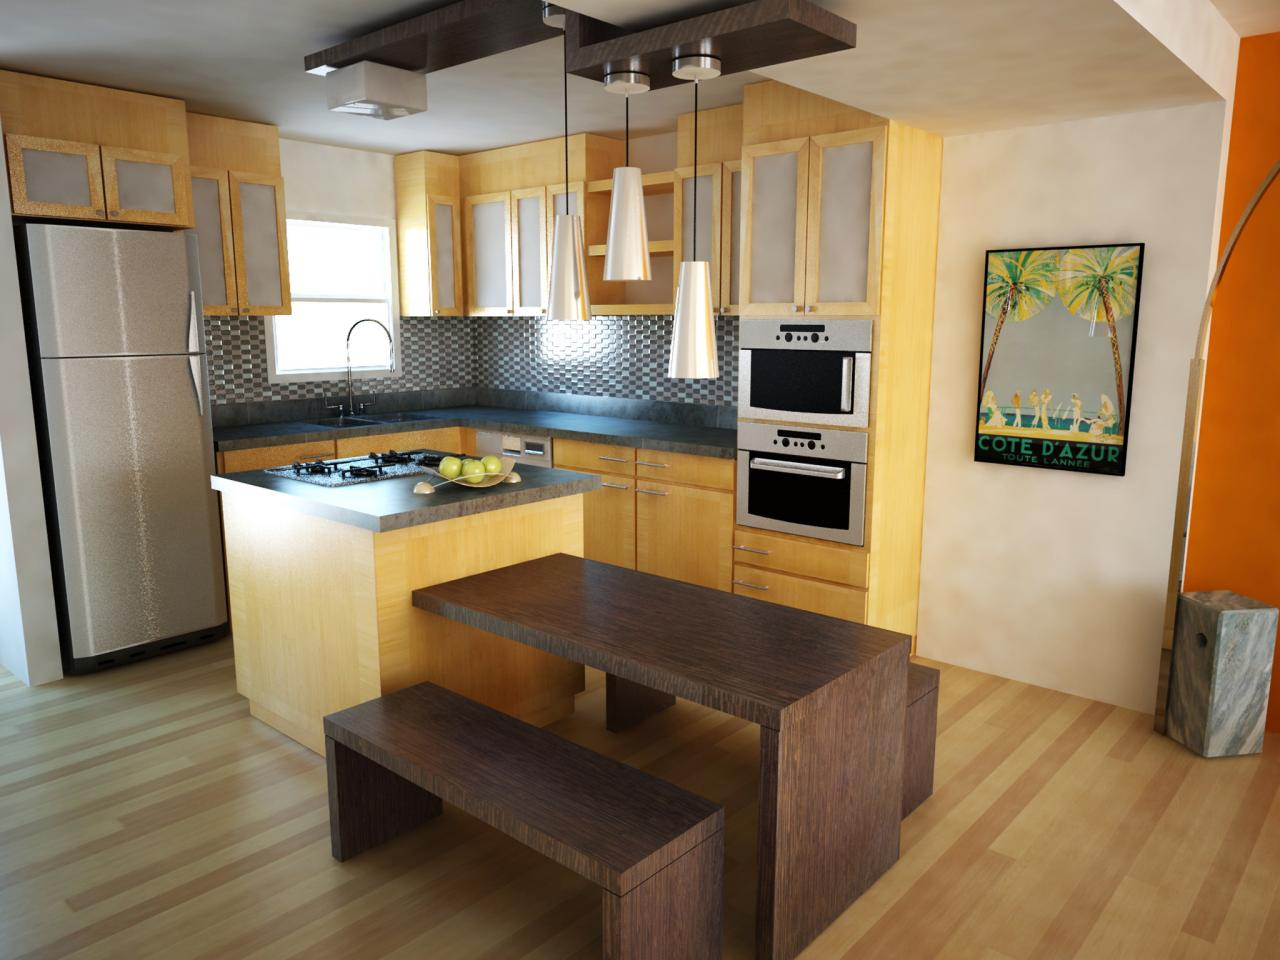 Pictures of Small Kitchen Island Ideas kitchen islands for small kitchens